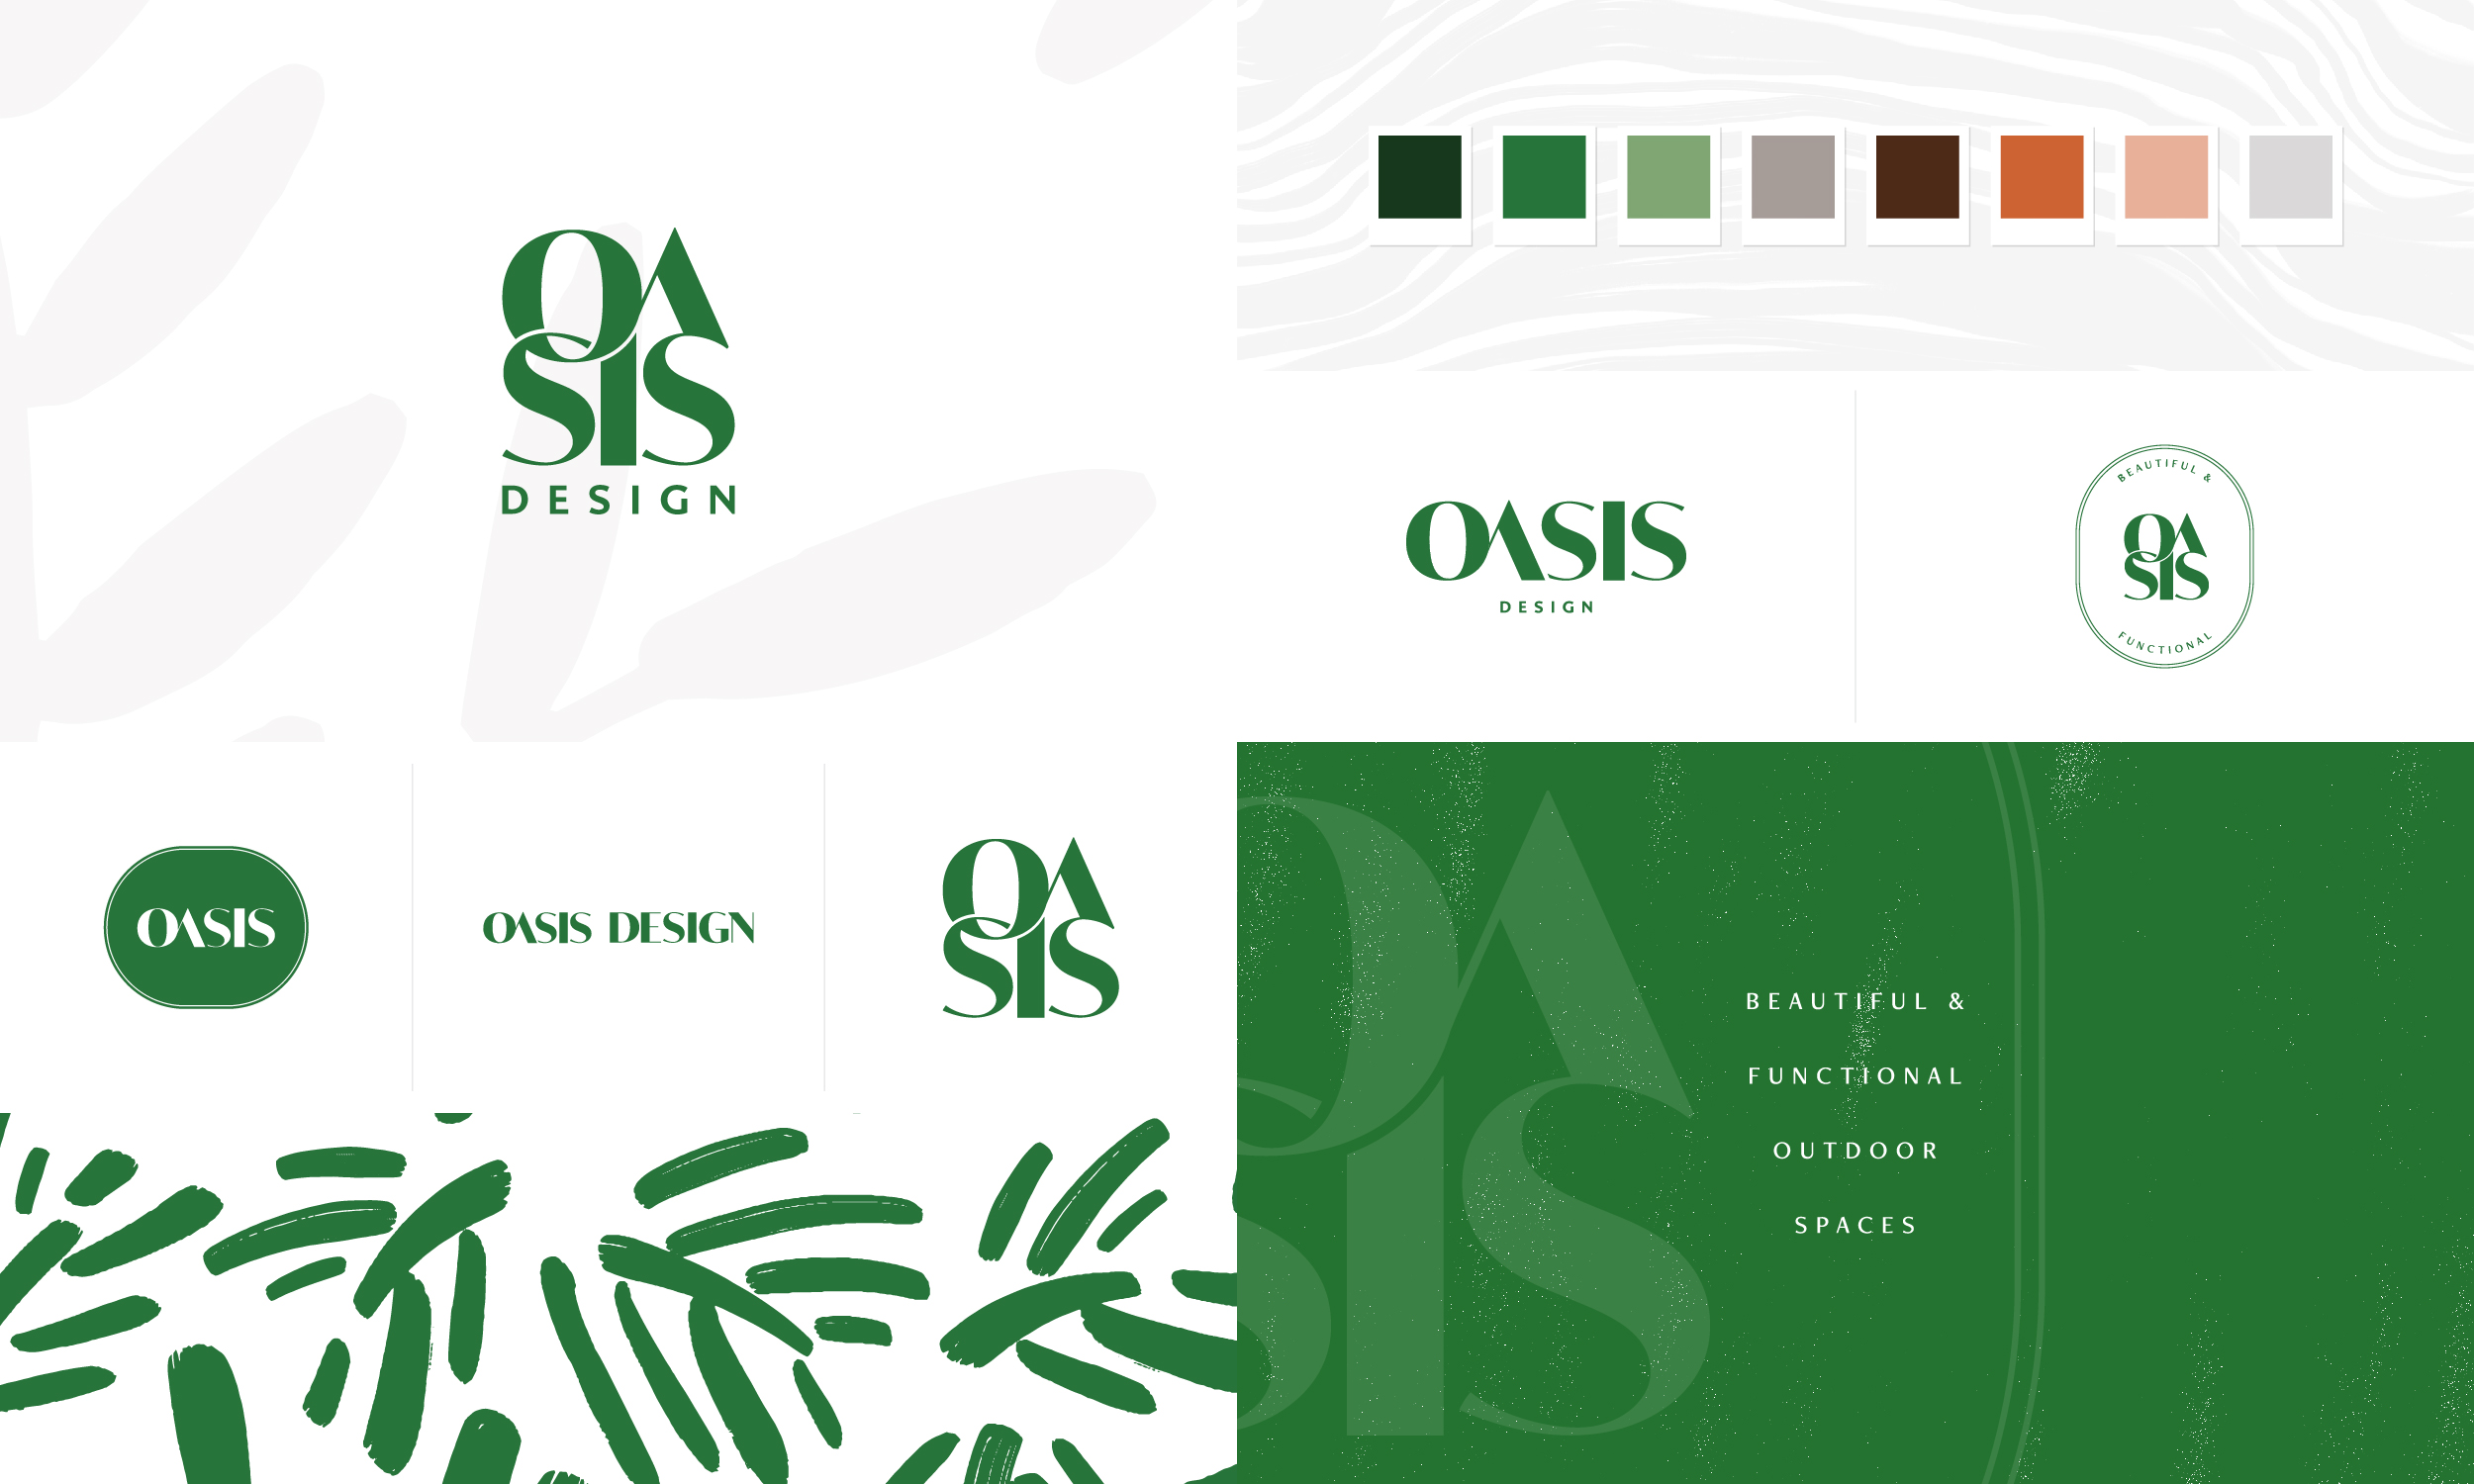 Oasis Design branding and strategy by Freckled Design Studio